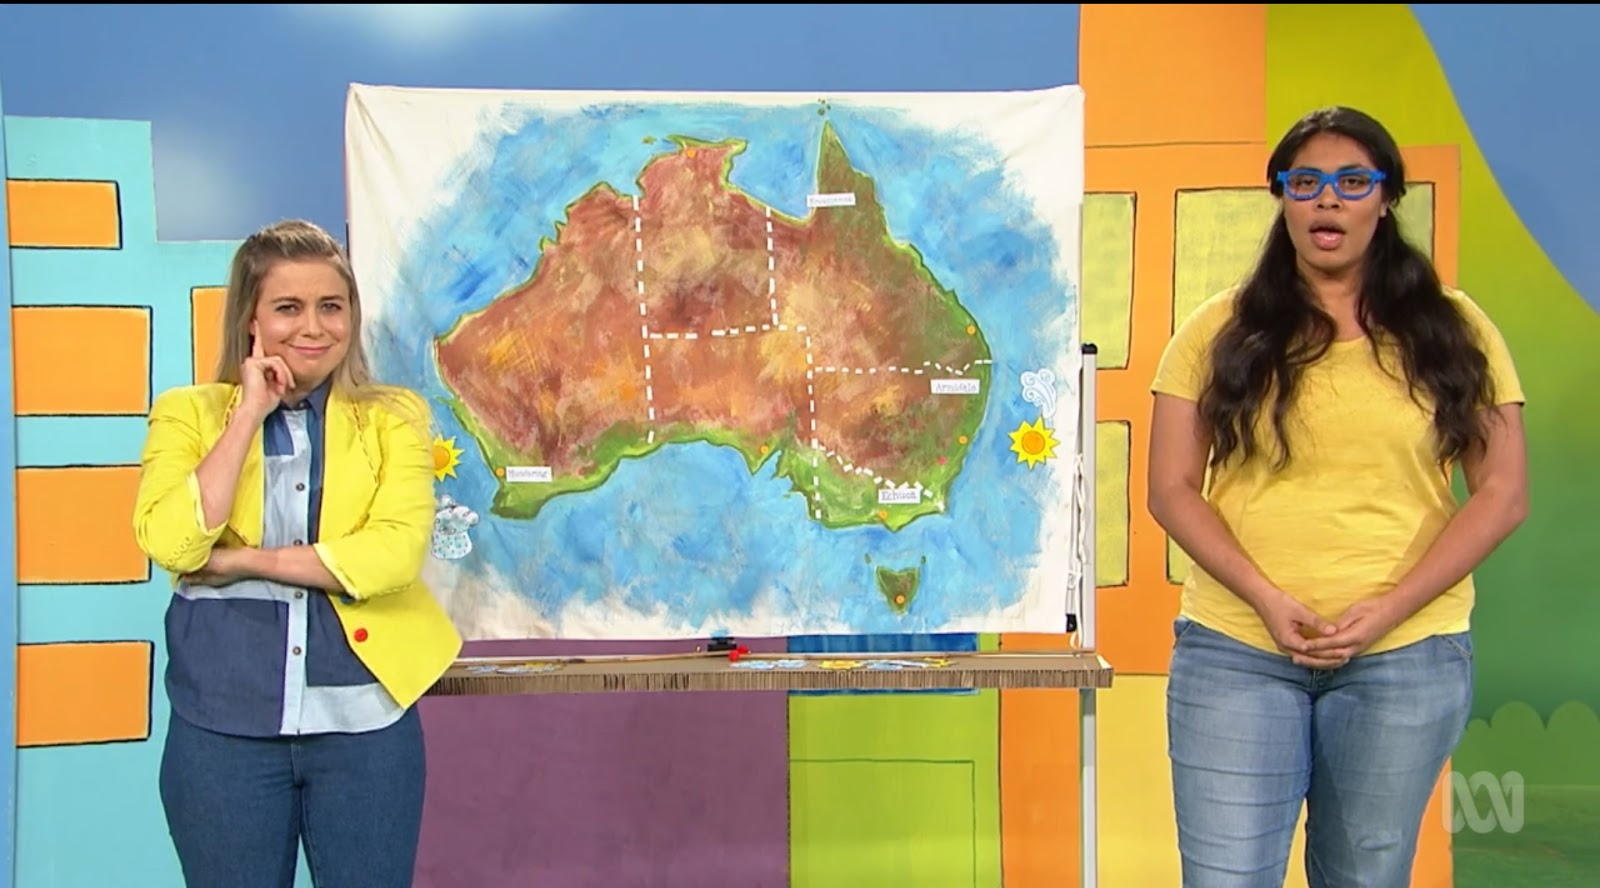 best educational kids shows abc iview play school geography australian kids show